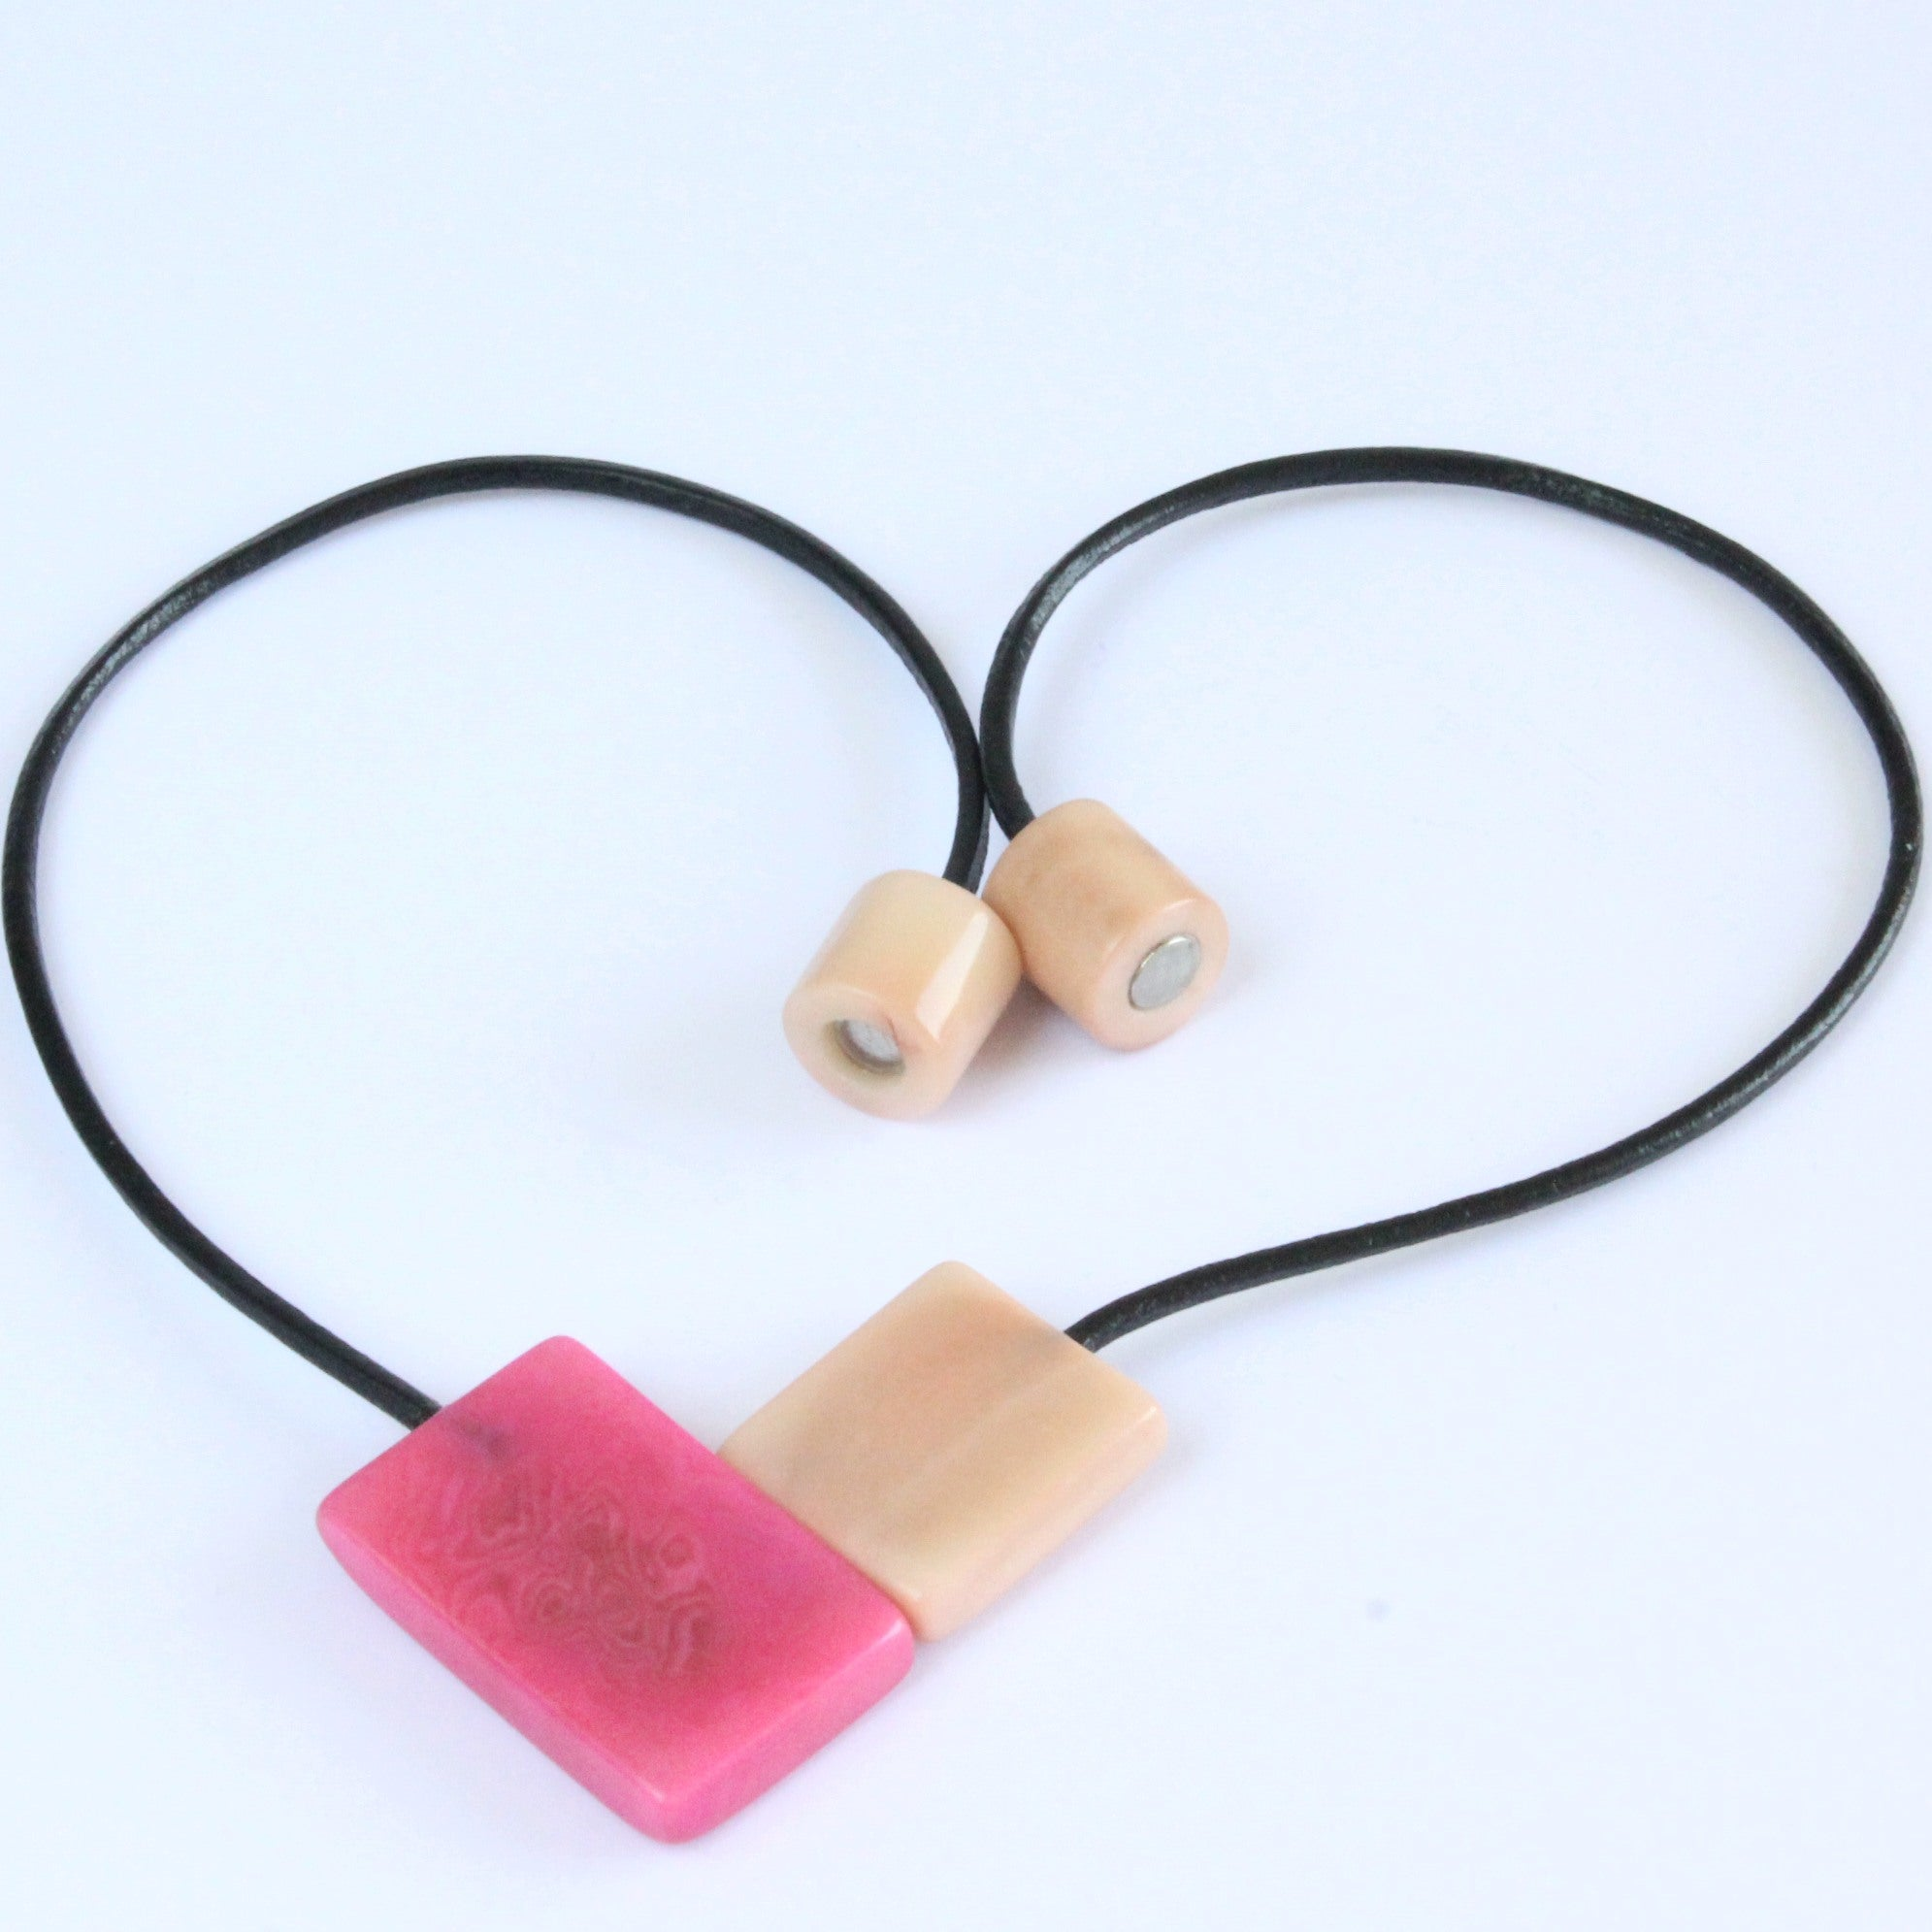 Handmade necklace, sustainable, tagua nut, magnetic lock, pink